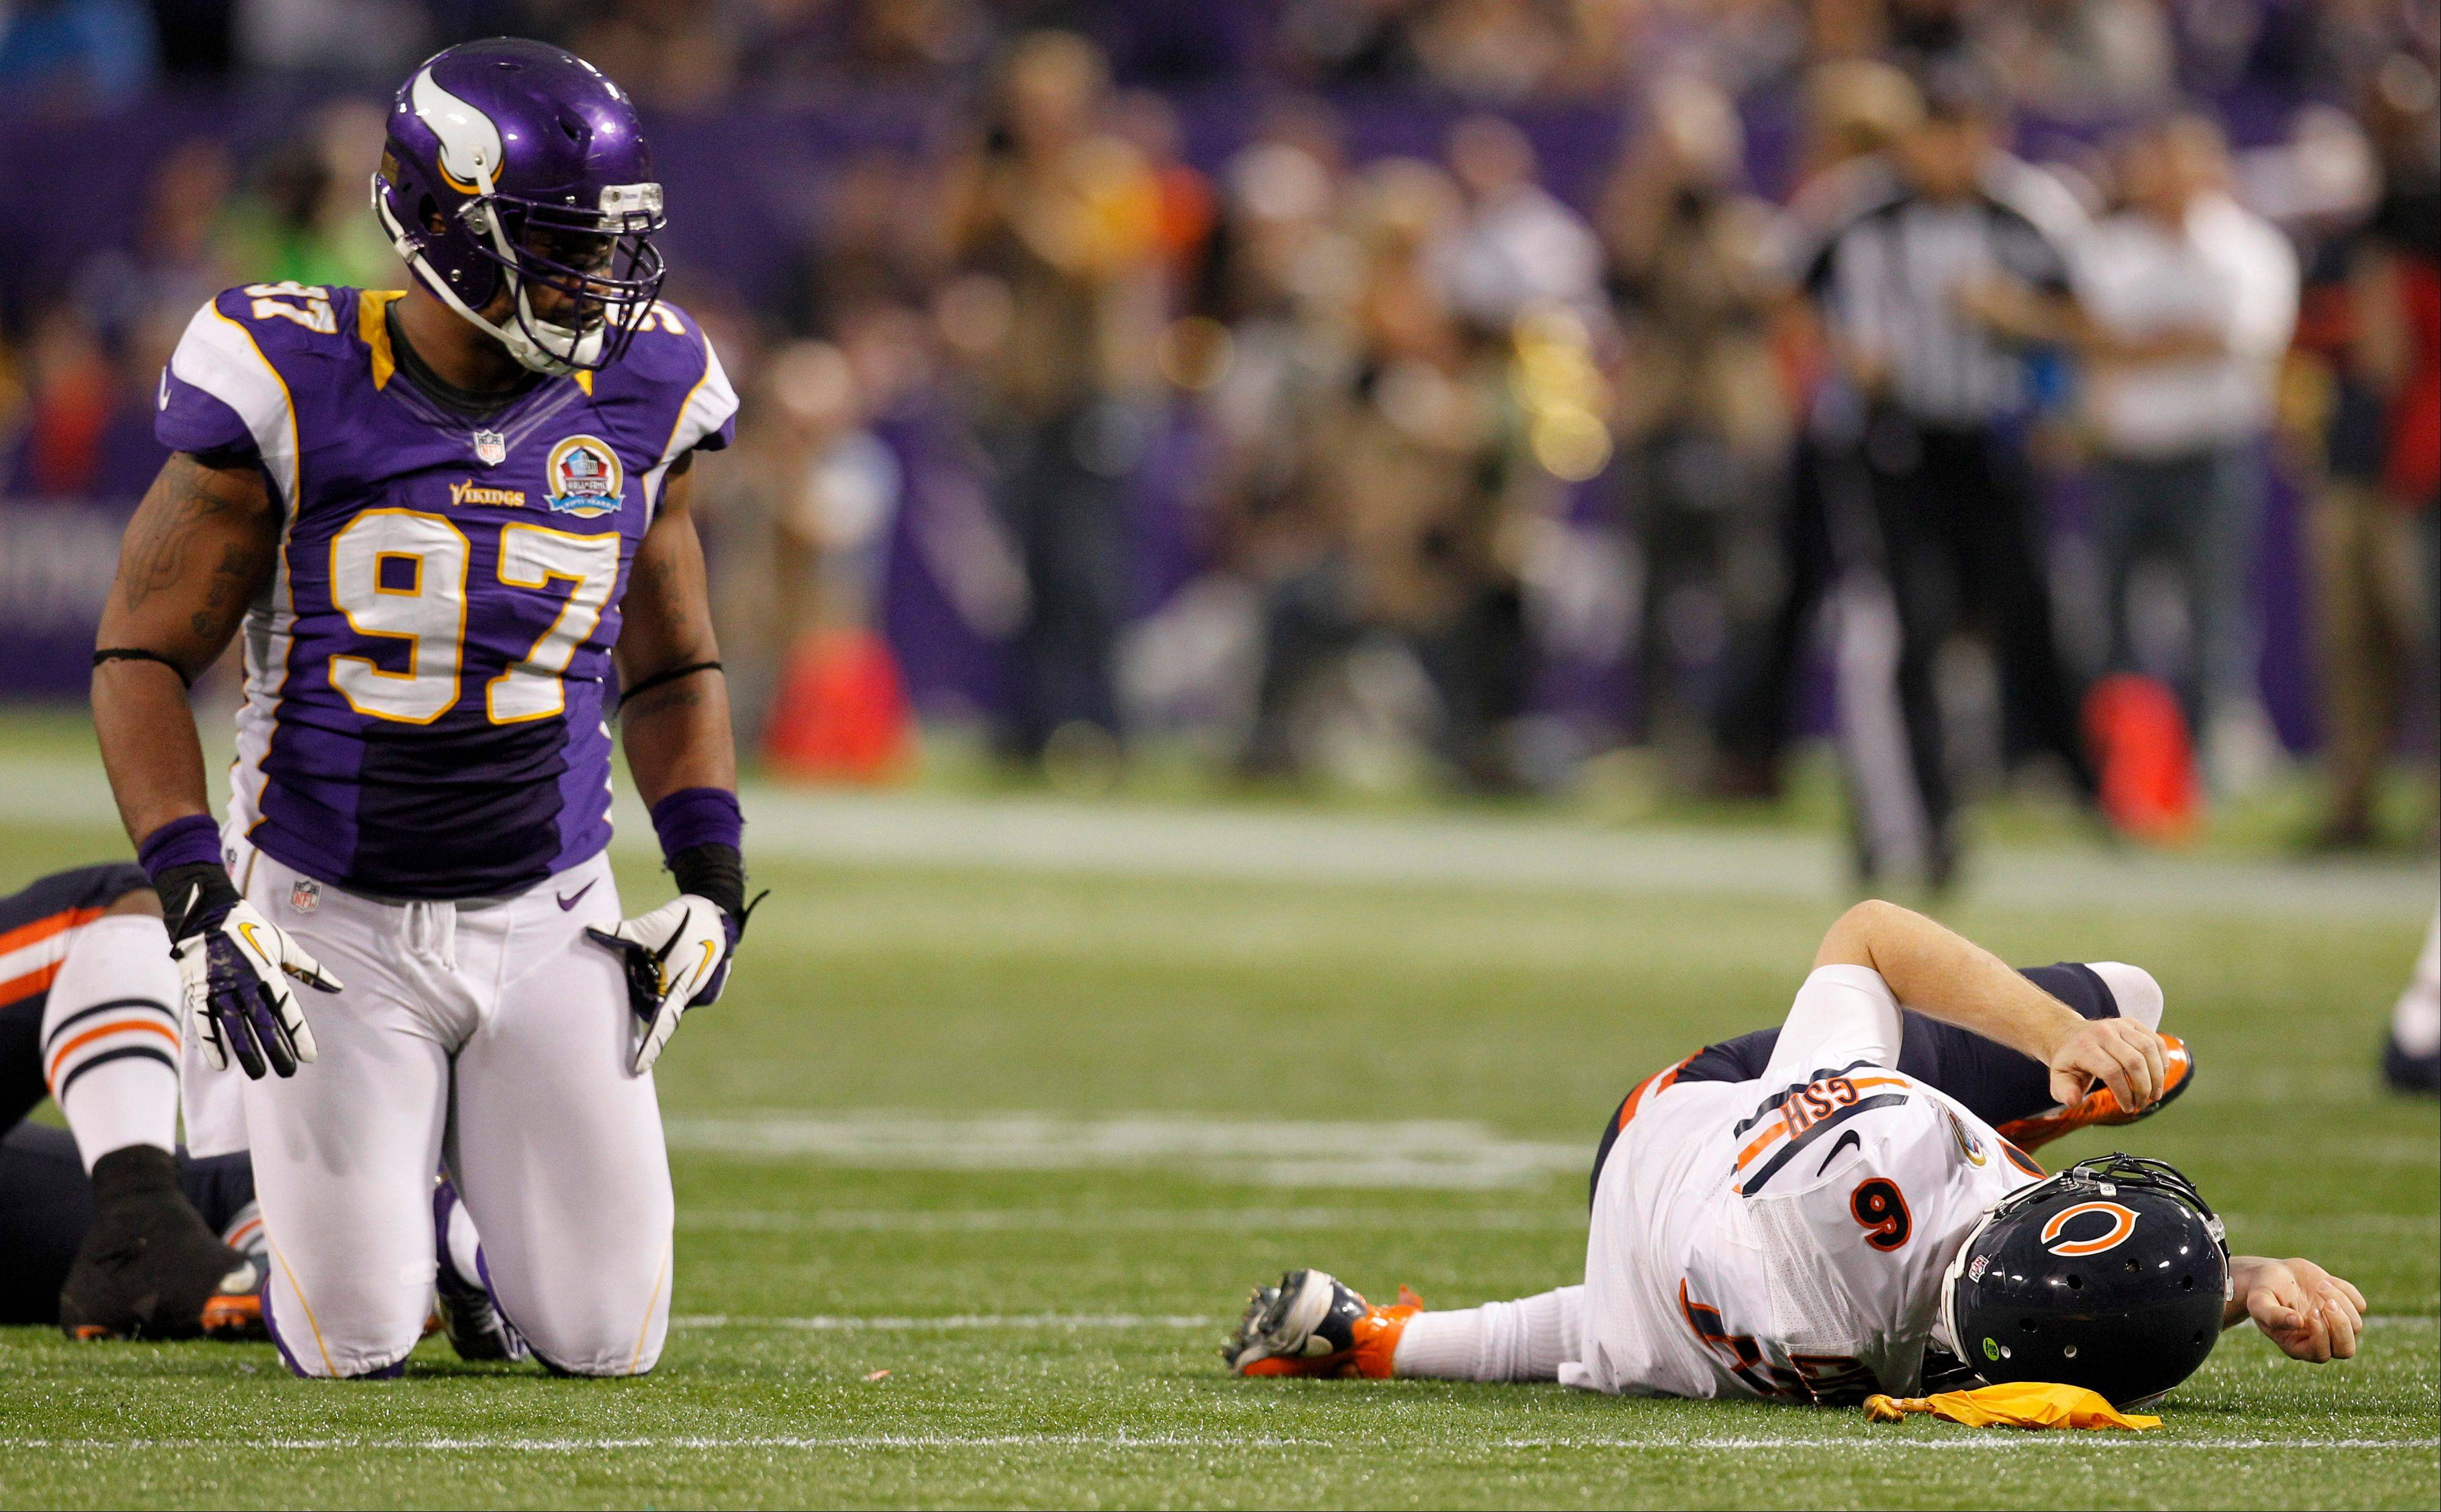 Chicago Bears quarterback Jay Cutler lays on the field after getting tackled by Minnesota Vikings defensive end Everson Griffen, left, during the second half. Griffen was called for a personal foul on the play.